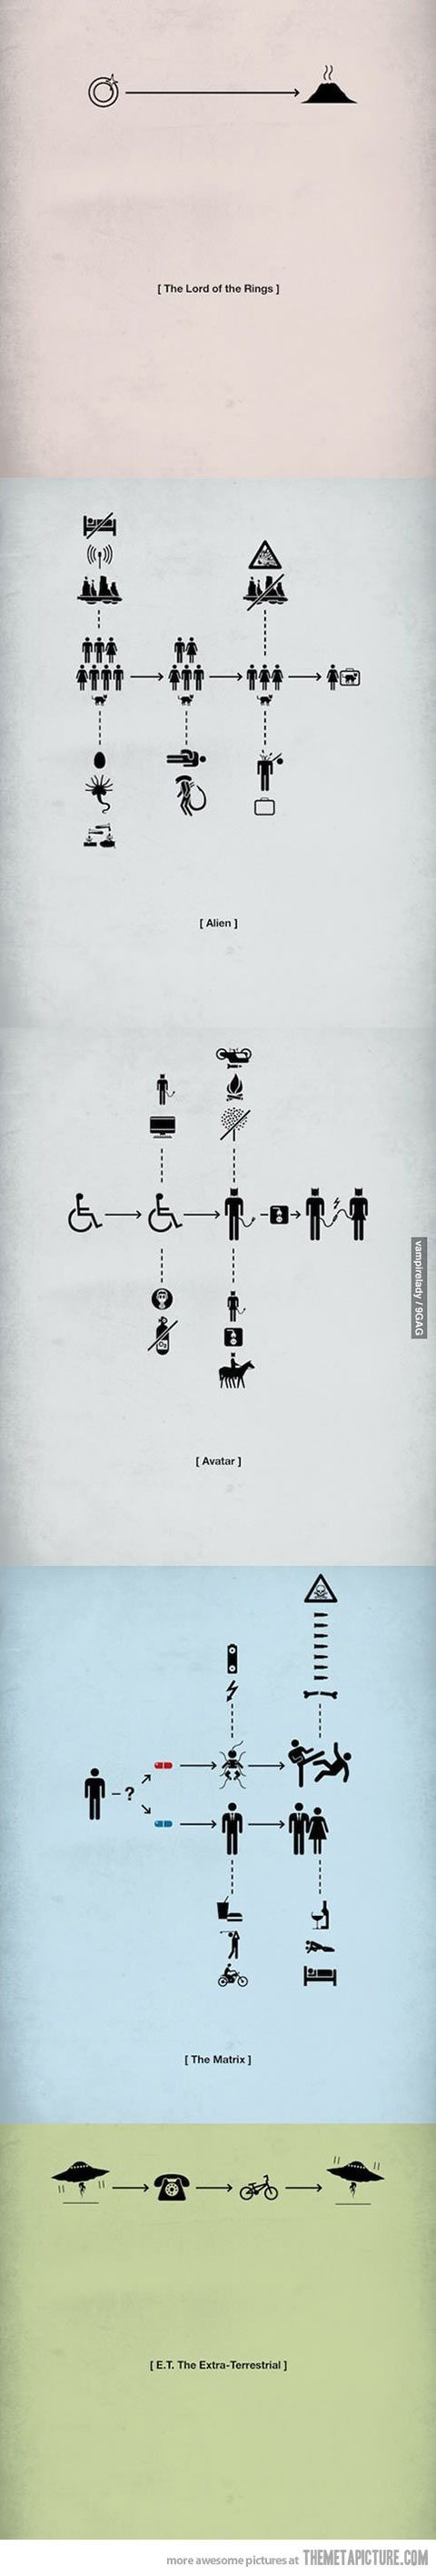 Movies in pictograms…